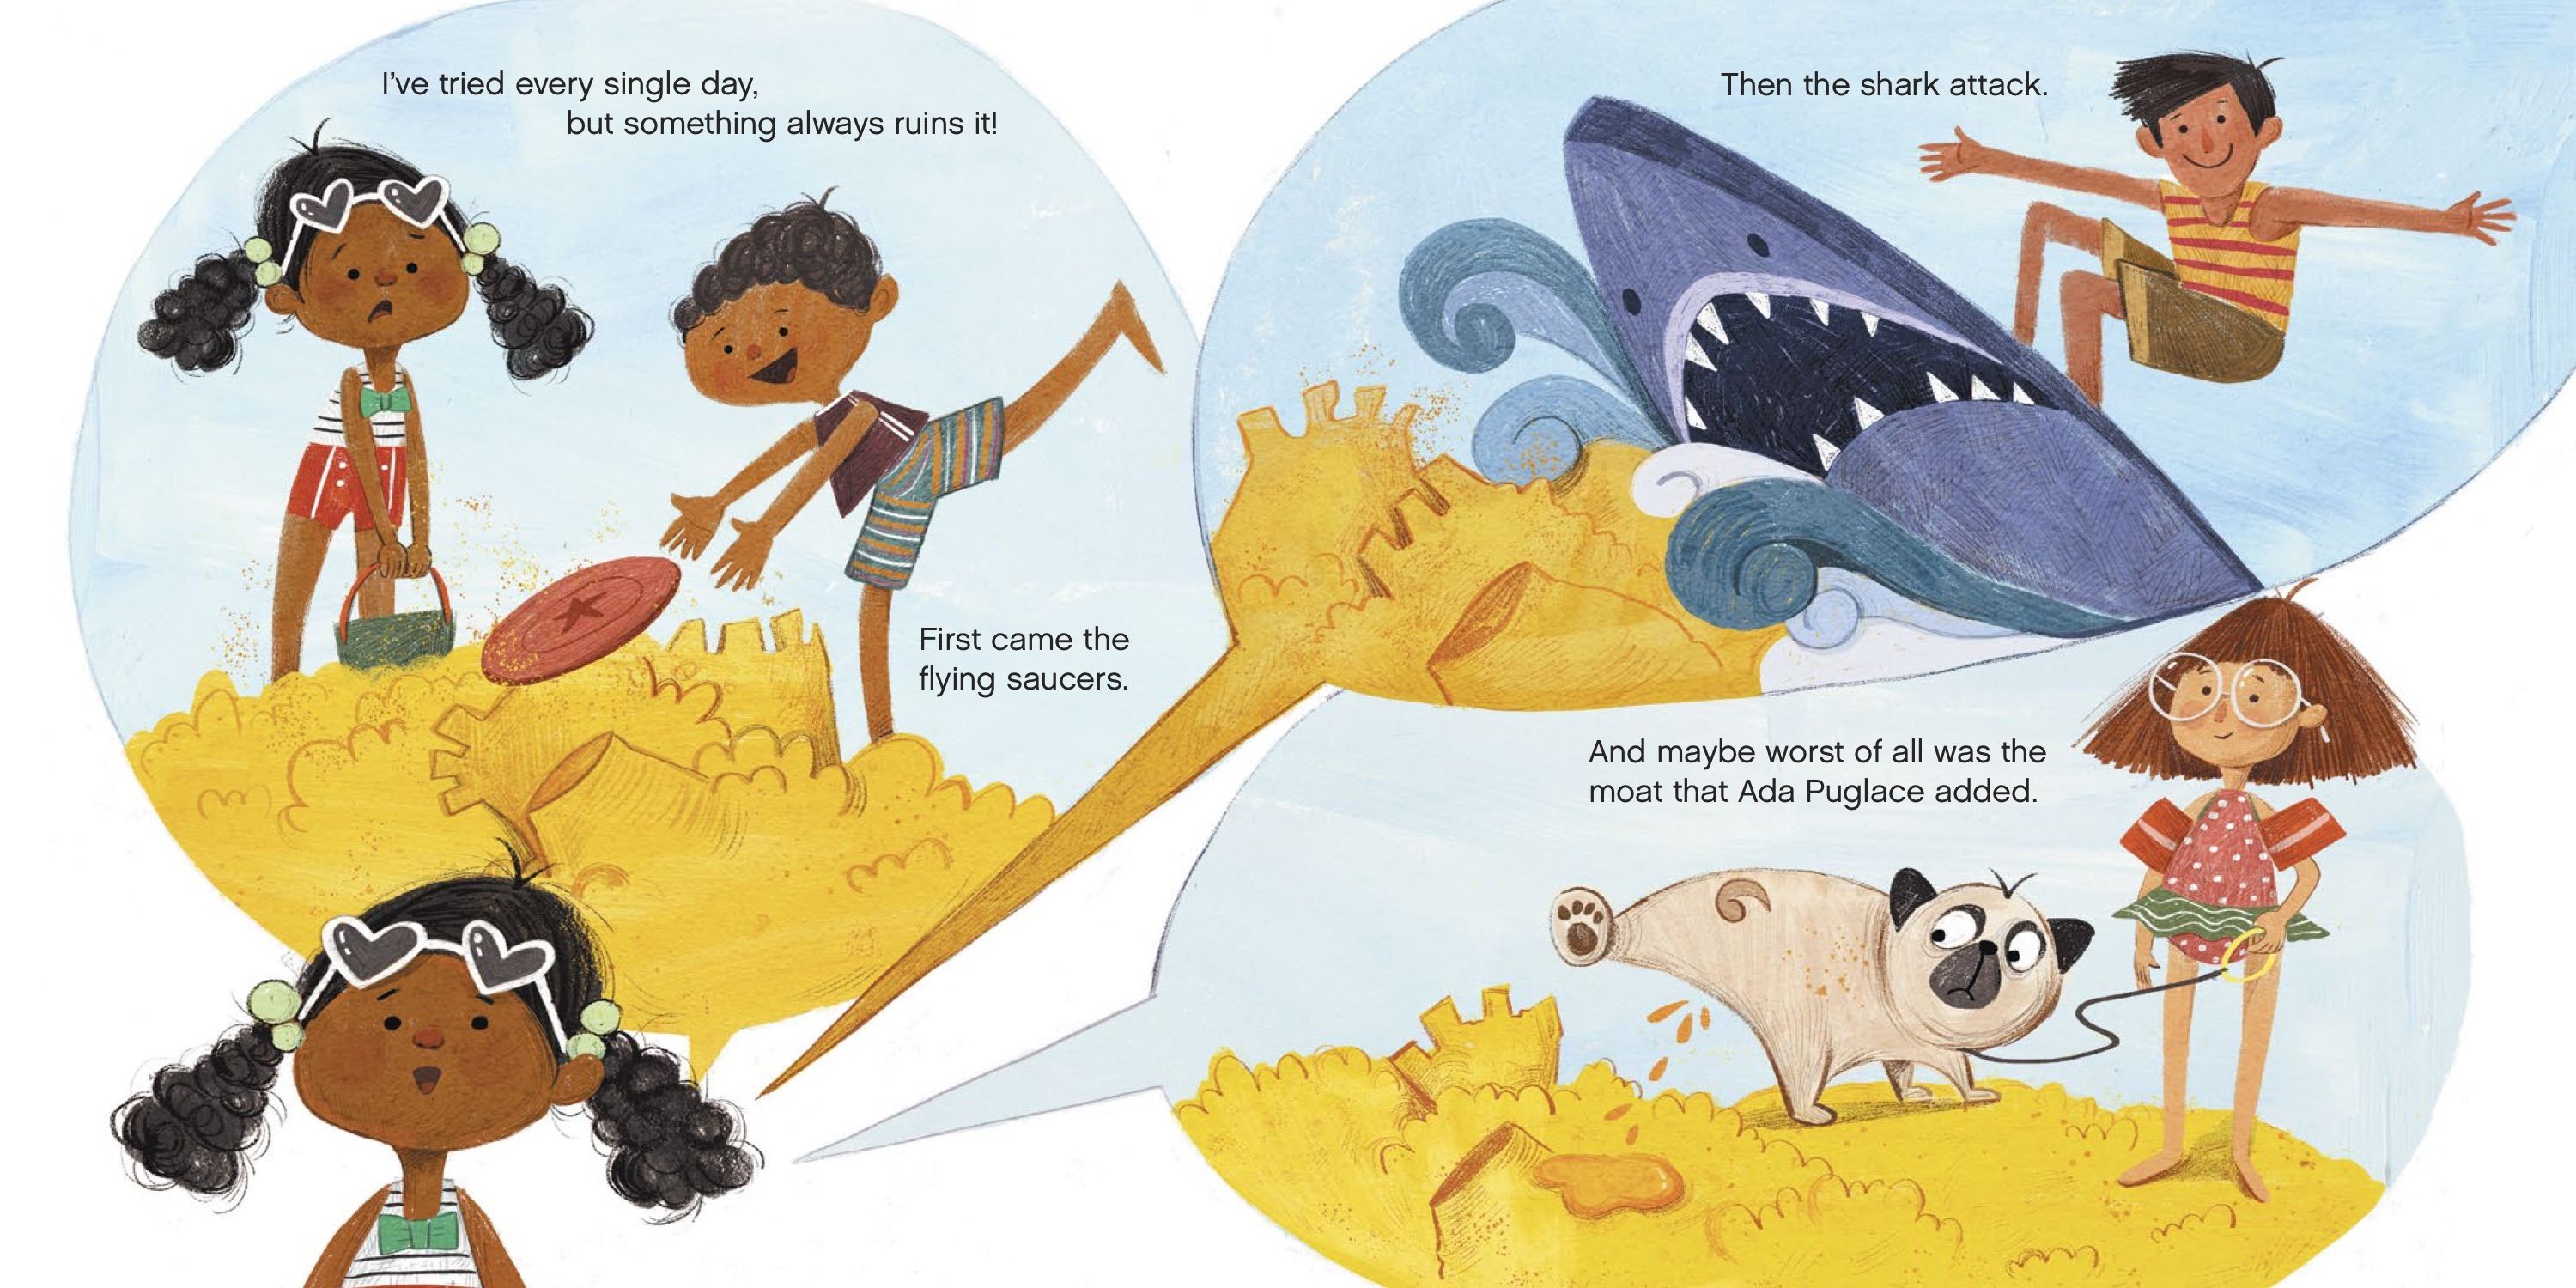 celebrate-picture-books-picture-book-review-how-to-code-a-sandcastle-ruined-sandcastles